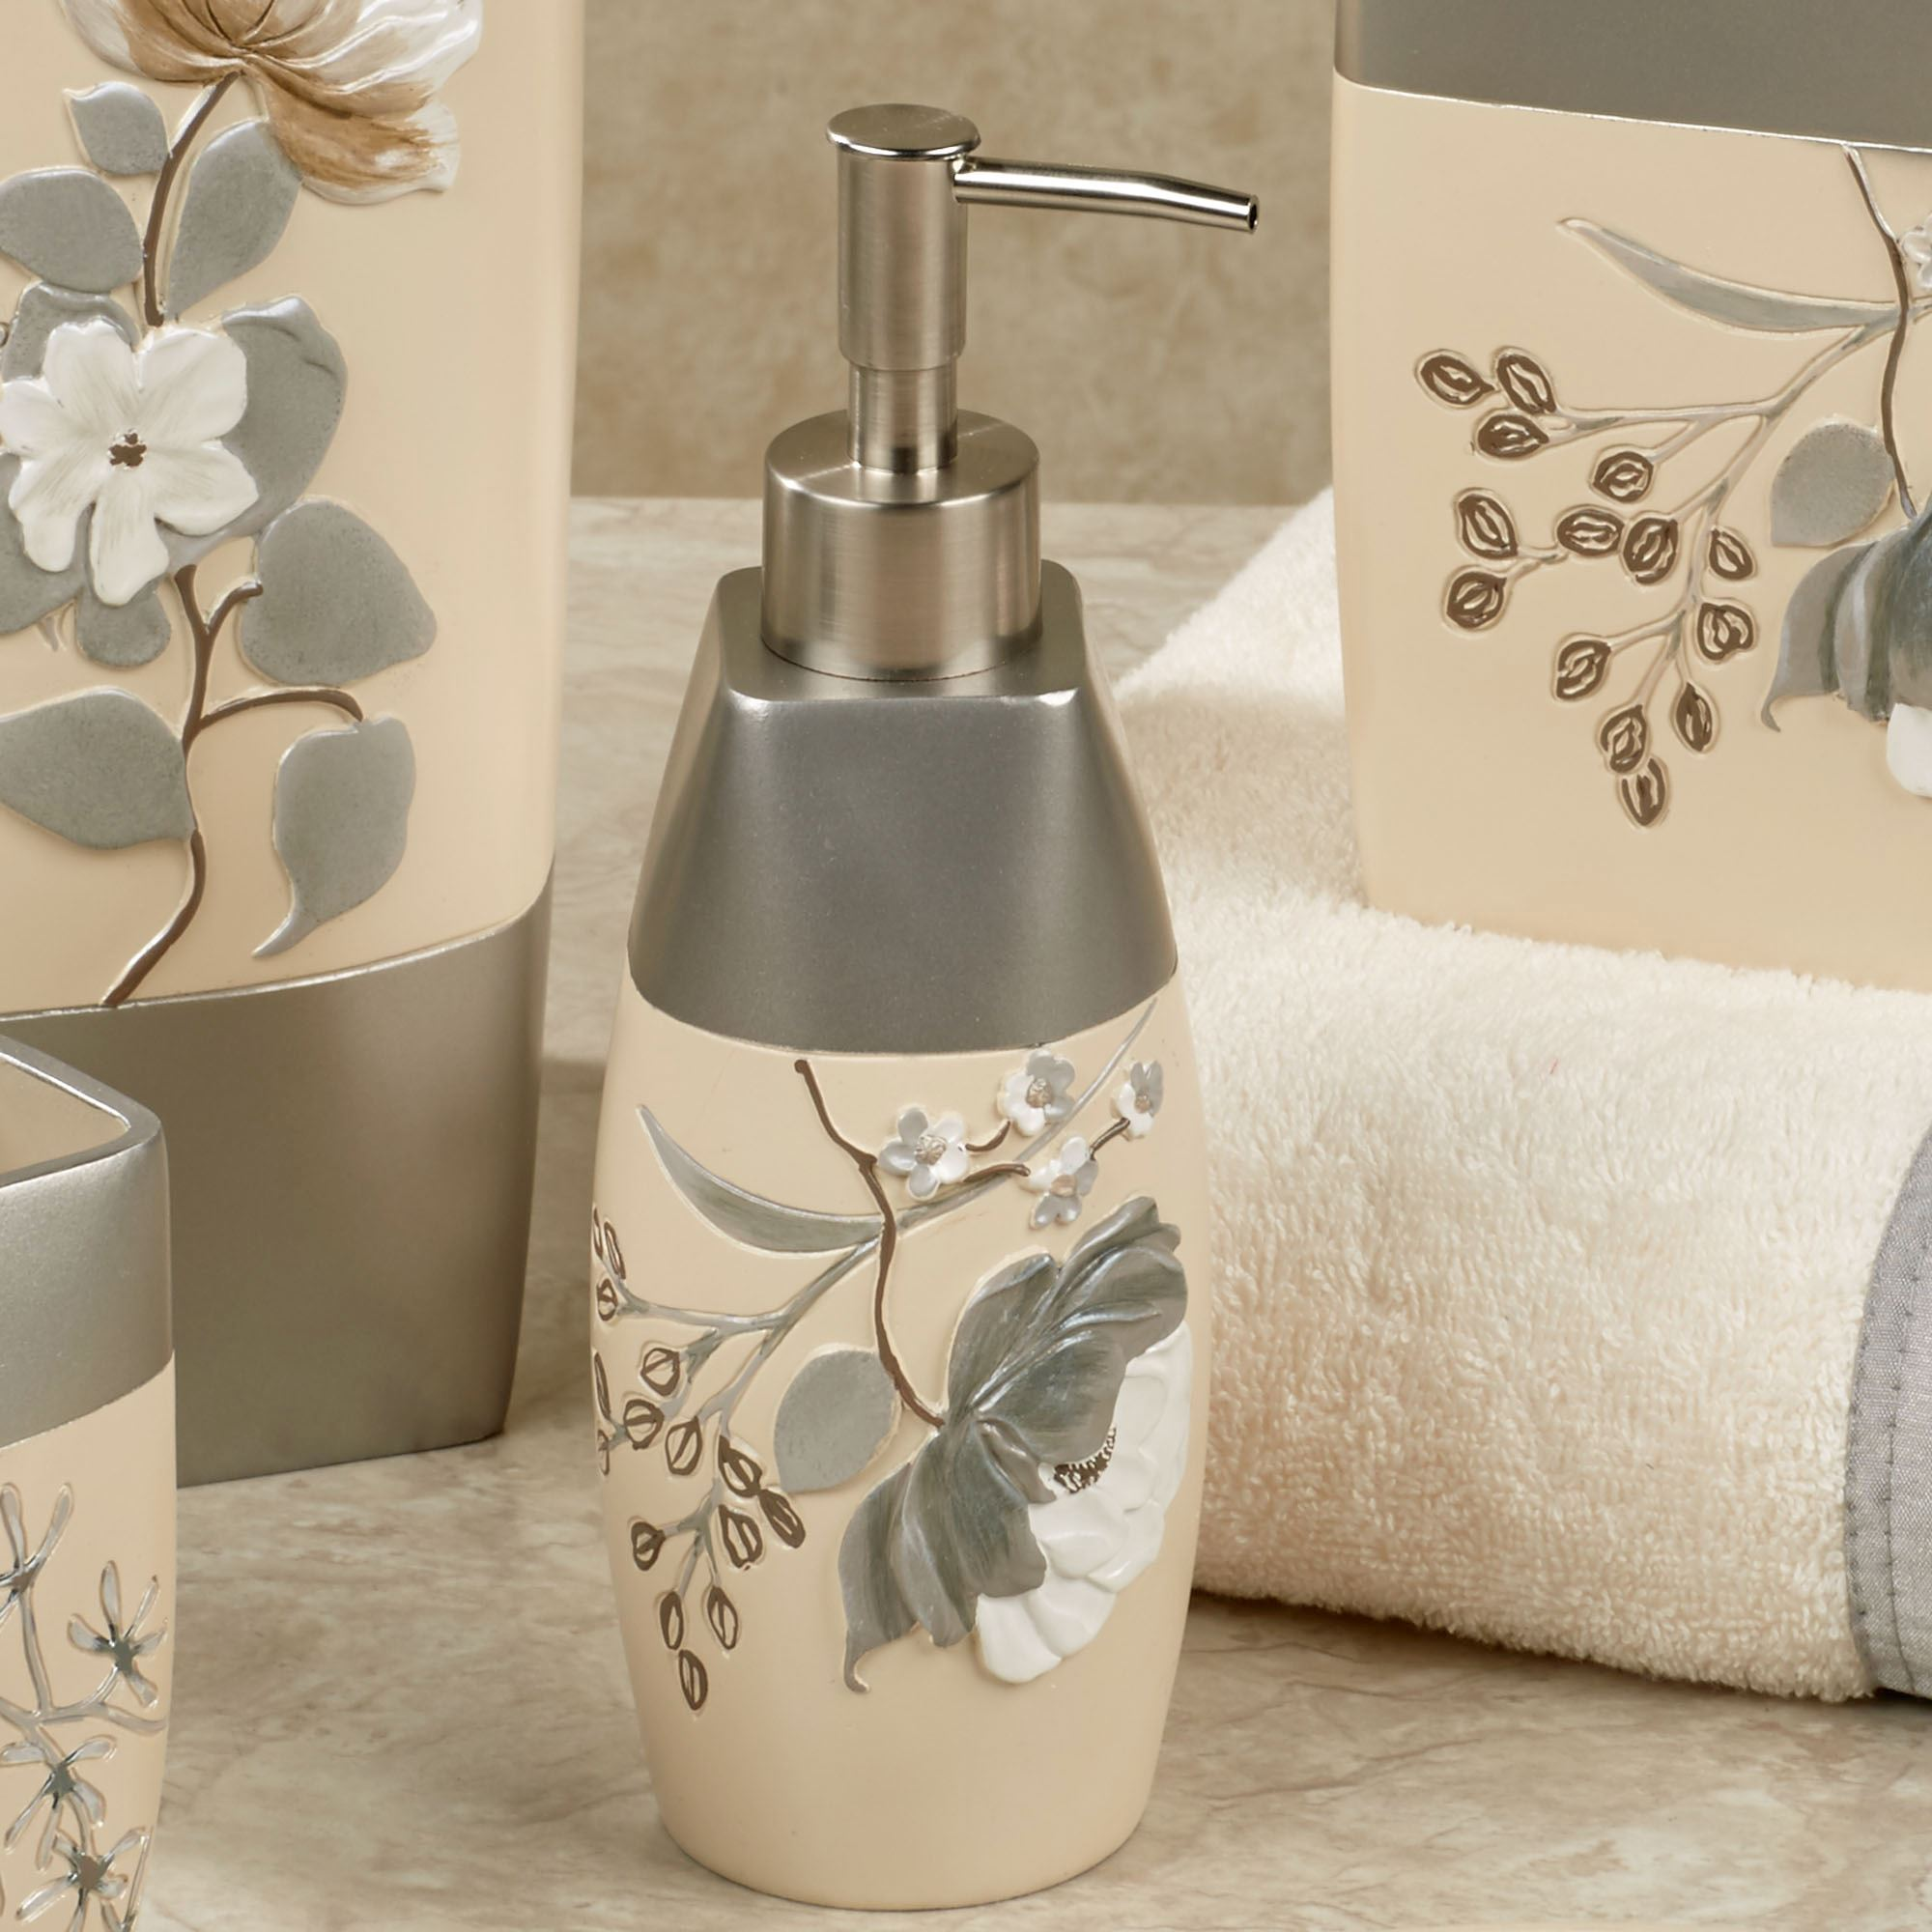 Bathroom Accessories Ashley Floral Bath Accessories